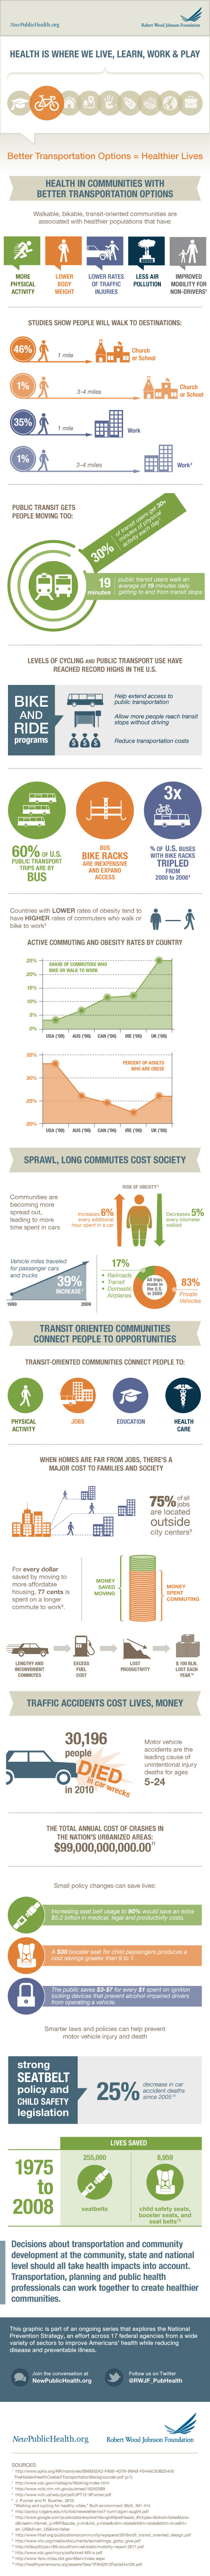 The many connections between transport and health. Infographic by NewPublicHealth.org/Robert Wood Johnson Foundation.